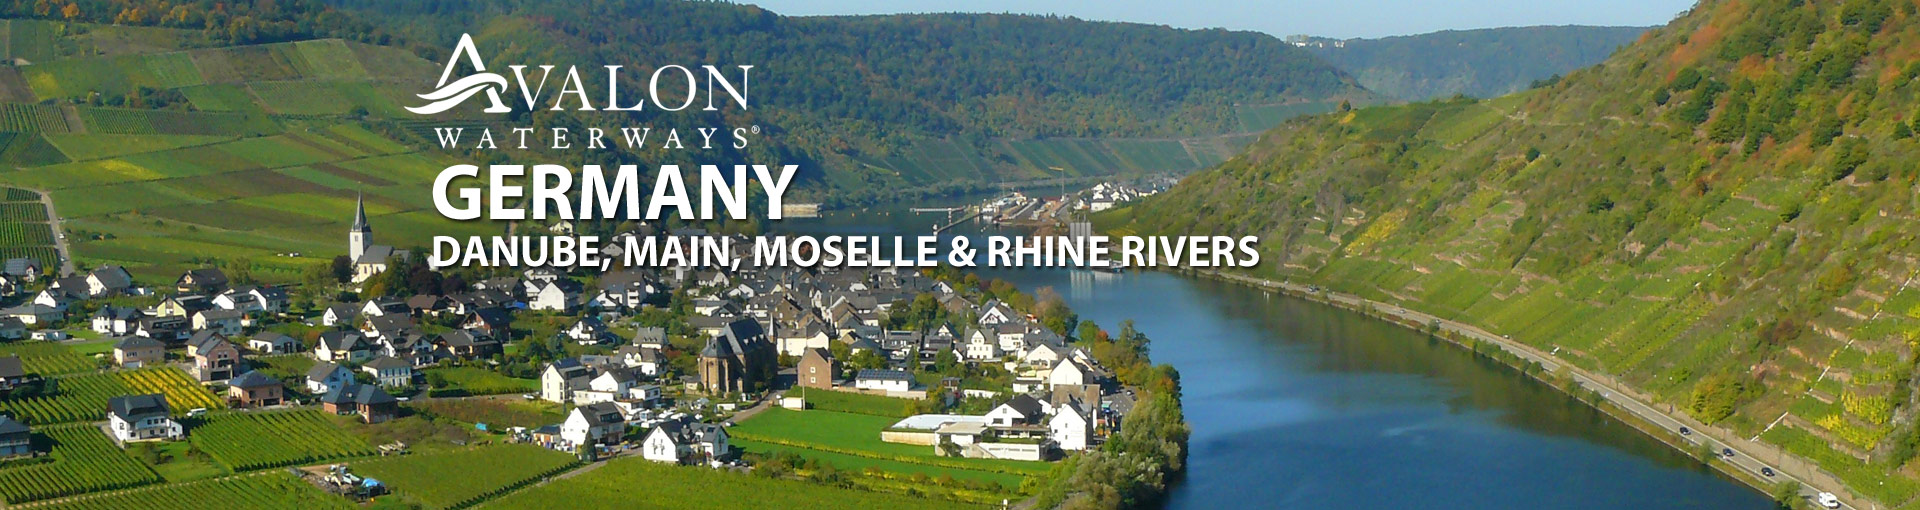 Avalon Waterways River Cruises through Germany